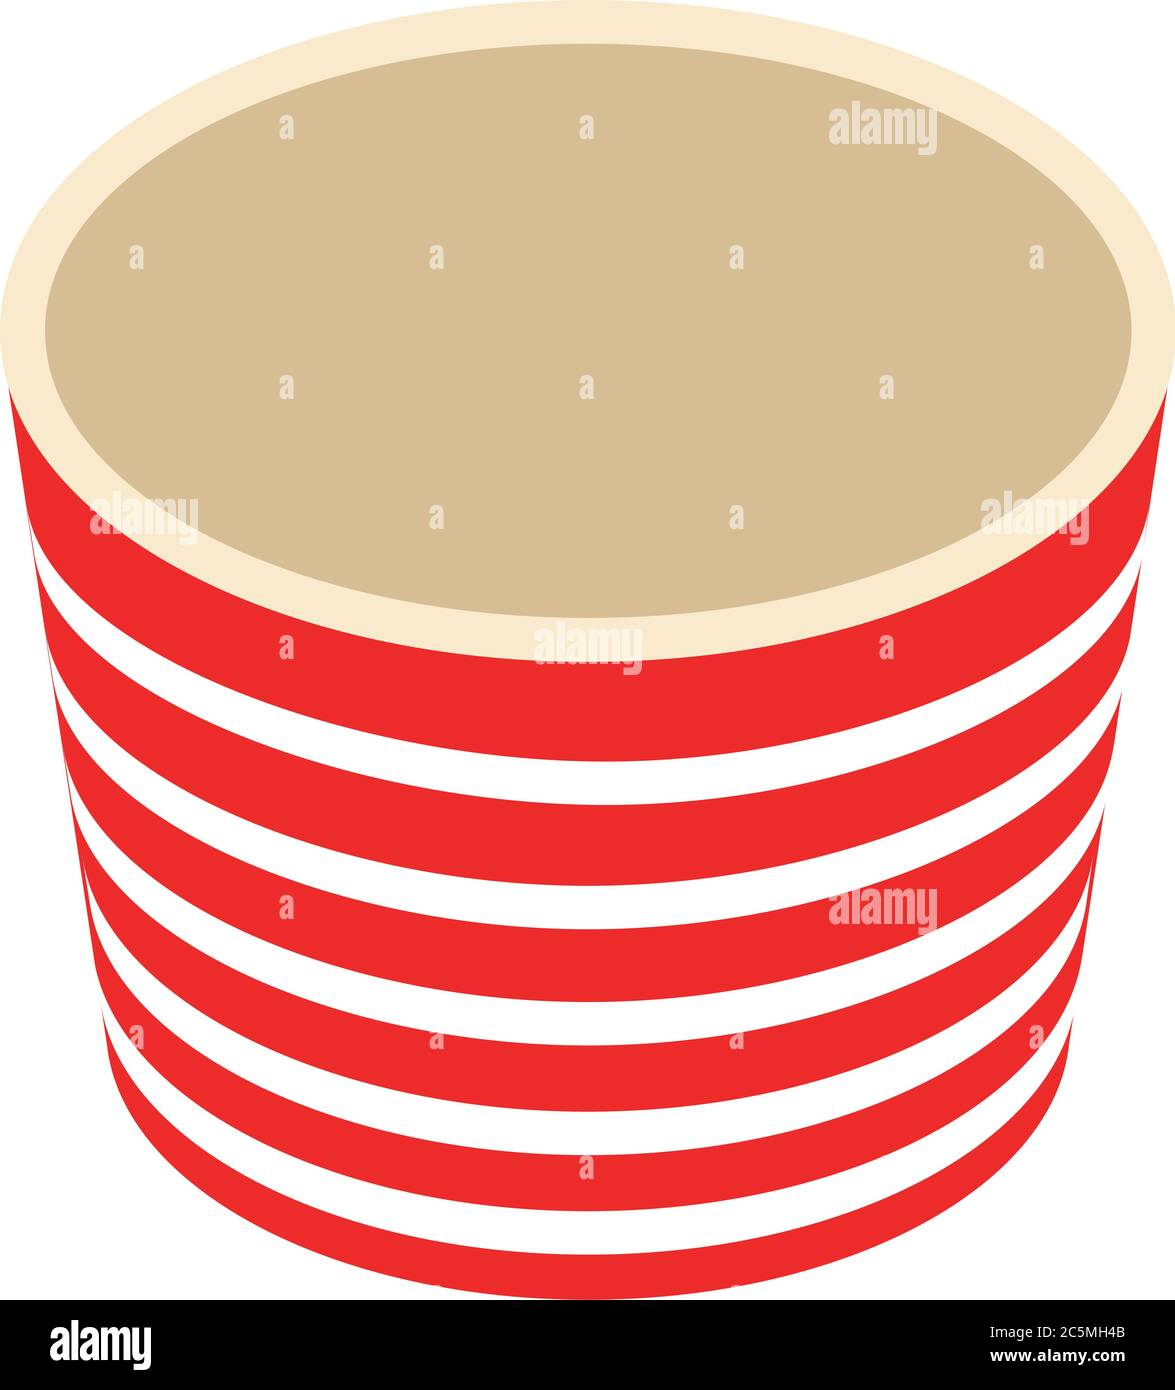 An Empty Red And White Striped Bucket Of Popcorn Isolated On The White Background Vector Illustration Cardboard Or Paper Bucket Cinema Snack And Stock Vector Image Art Alamy